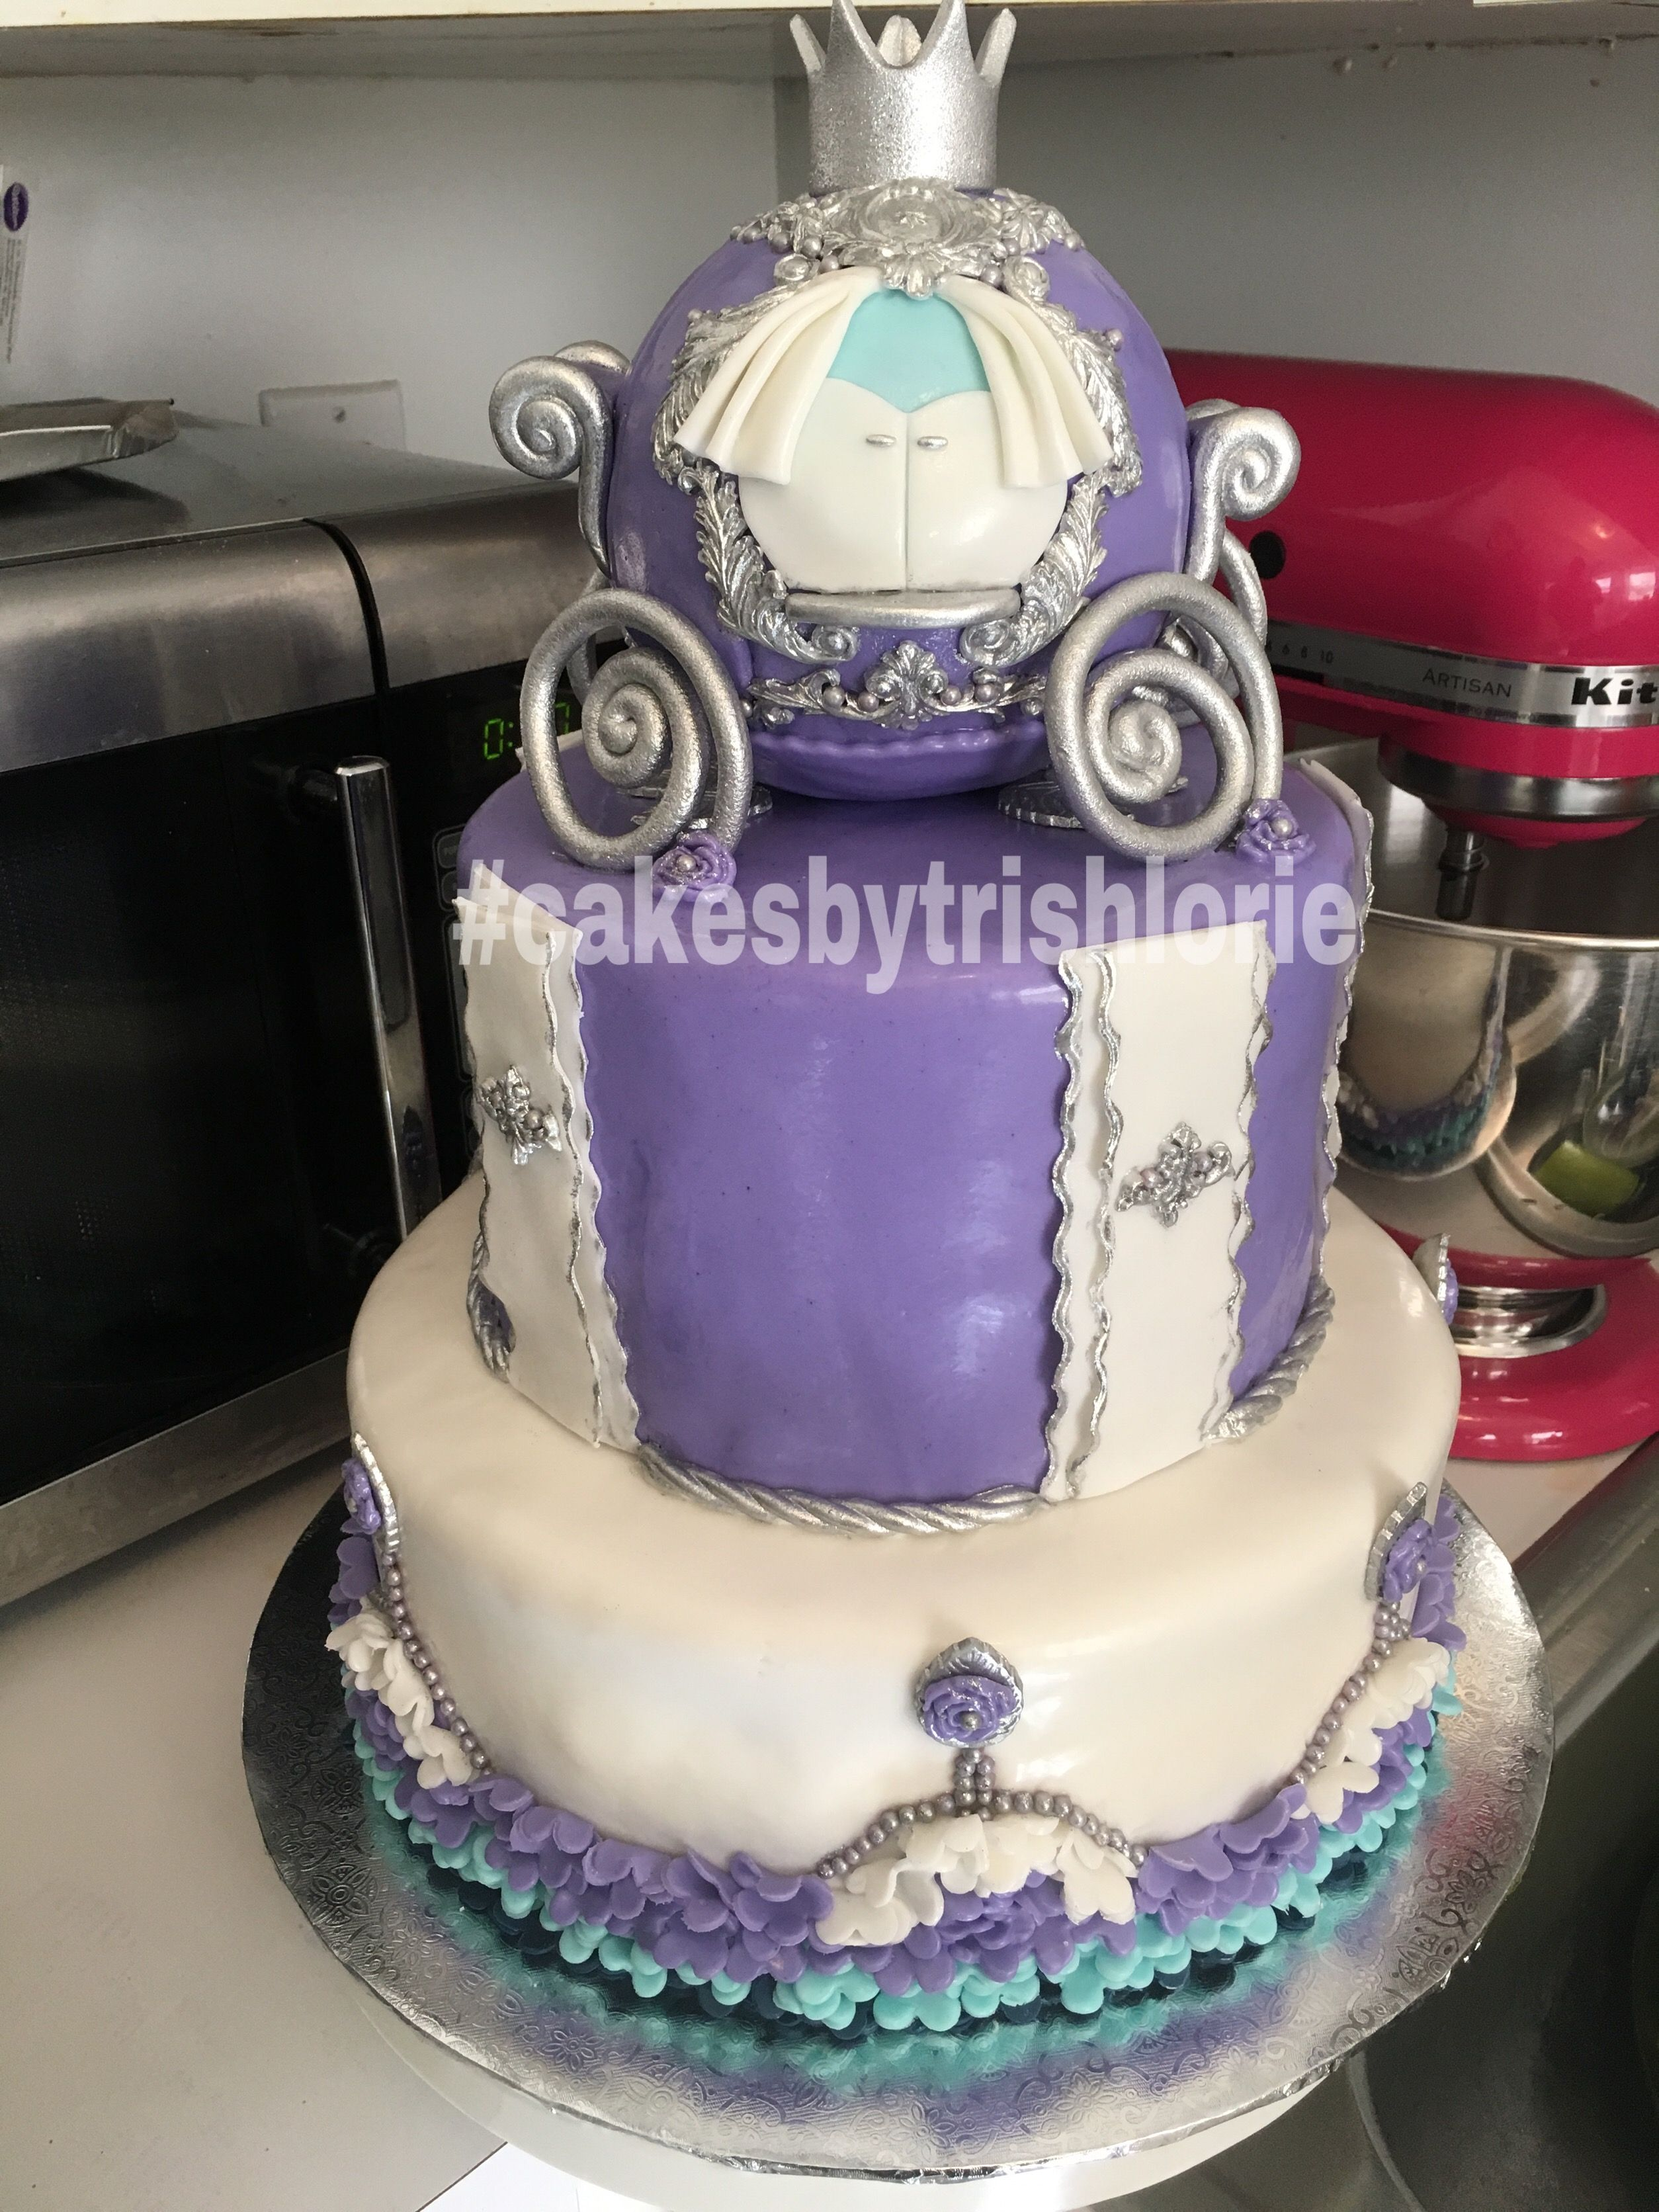 Cinderella Baby Shower Cake Cakes By Trish Lorie Pinterest